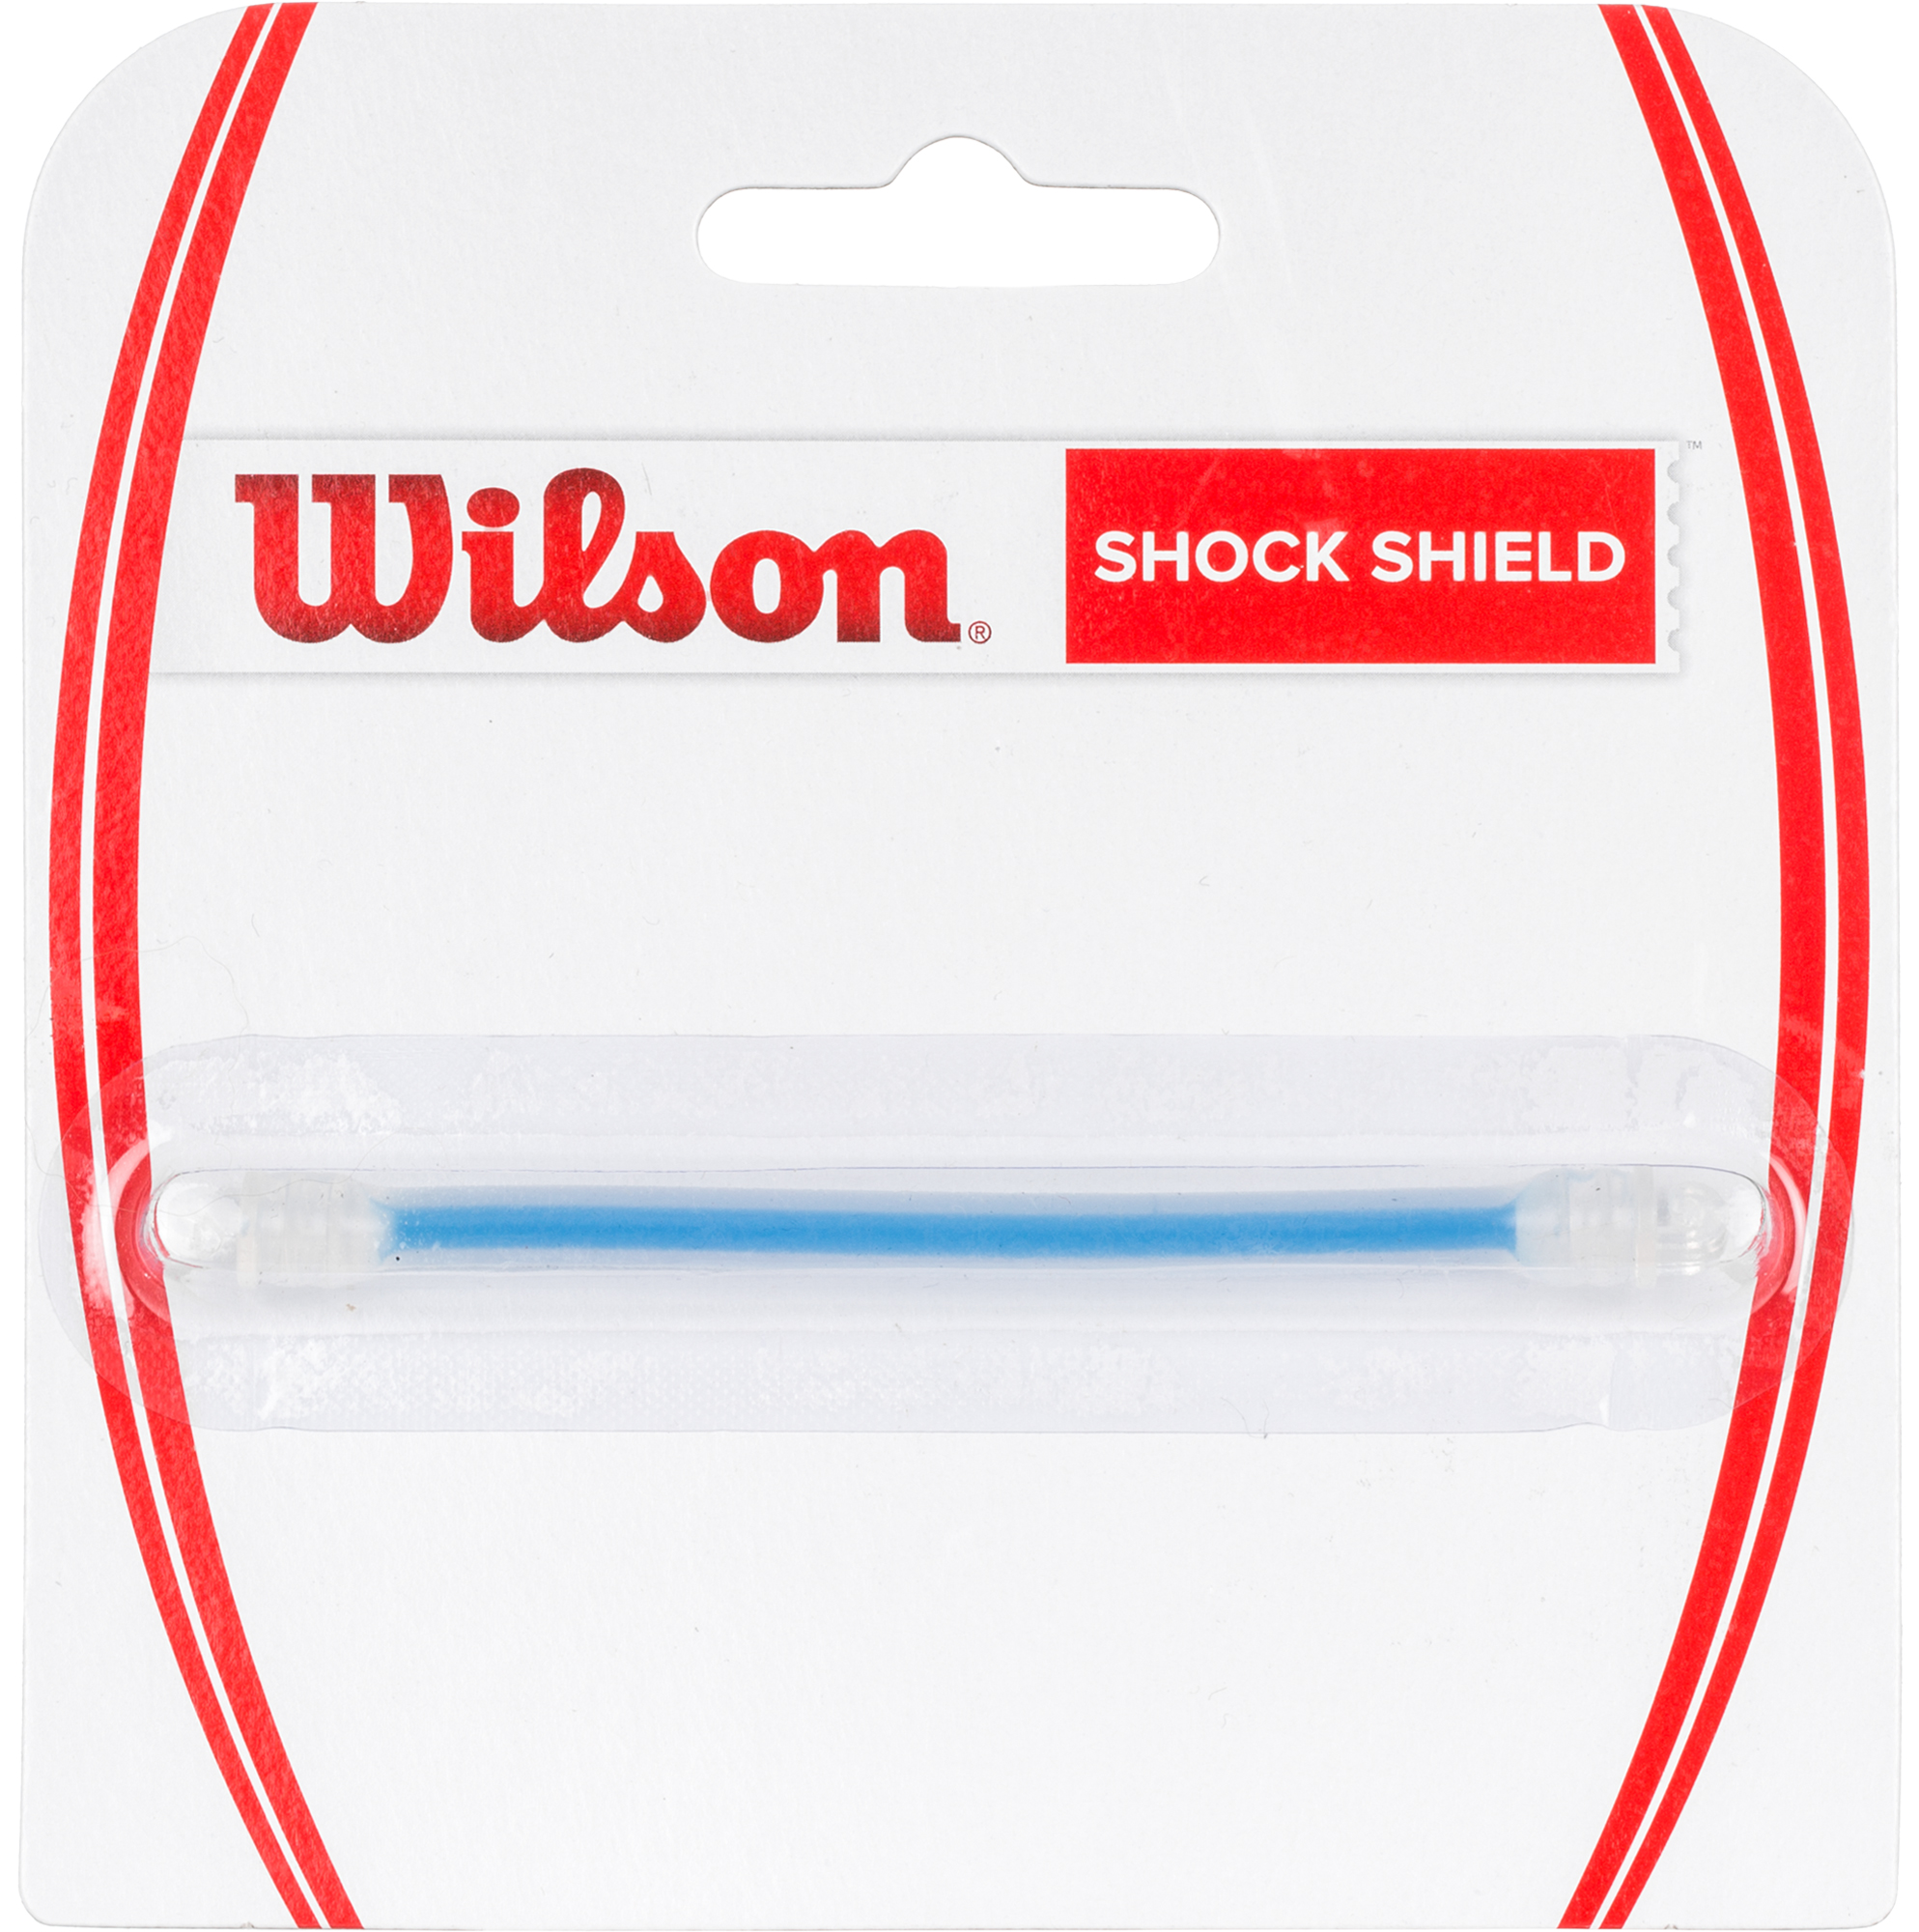 Wilson Виброгаситель Wilson Shock Shield Dampener виброгаситель wilson emotisorbs assorted pack смайлик